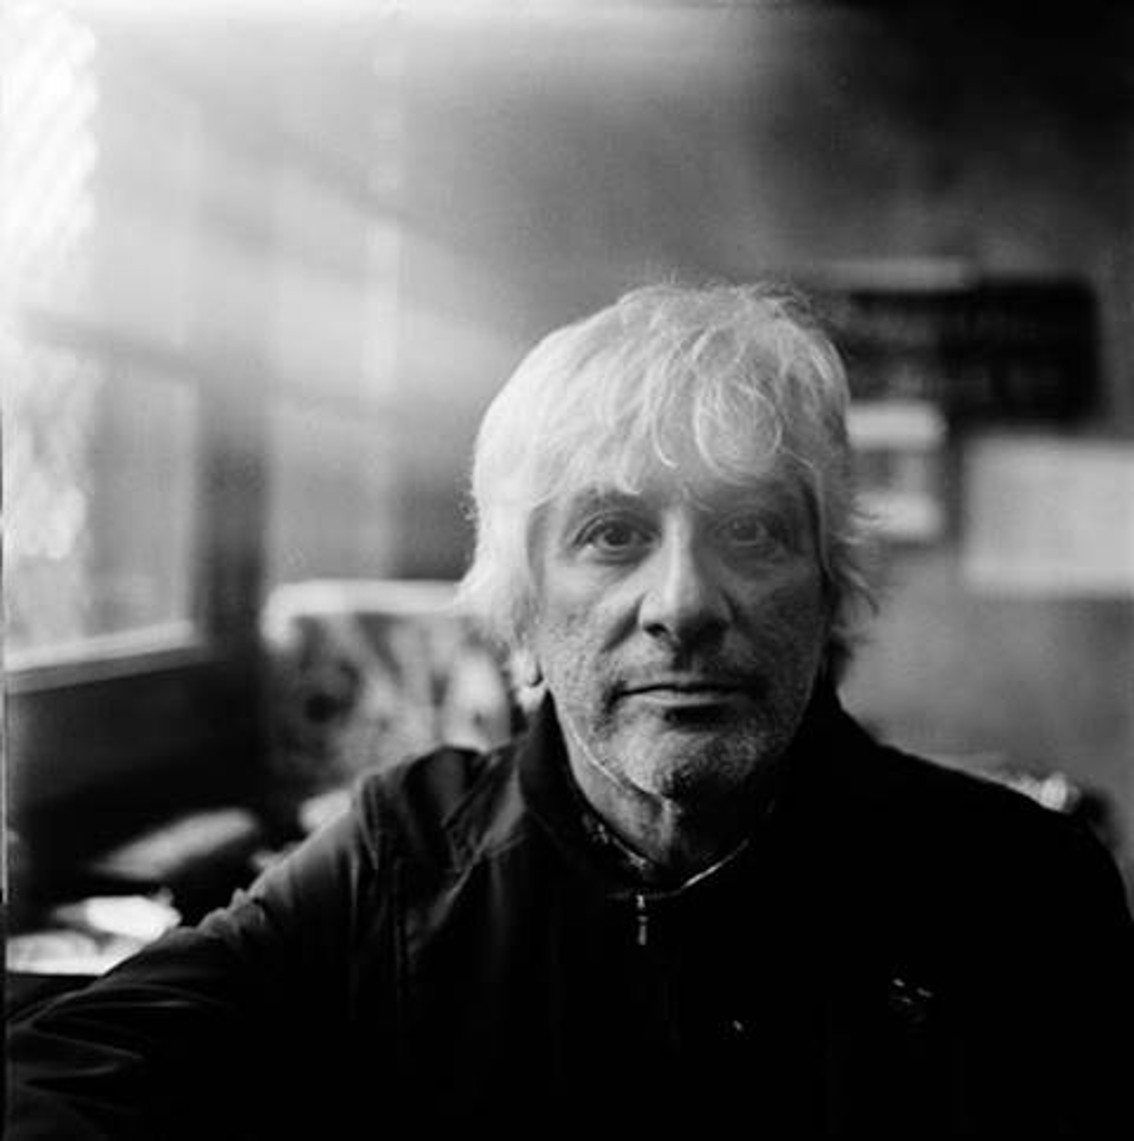 Mute announces the signing of Sonic Youth founding member Lee Ranaldo